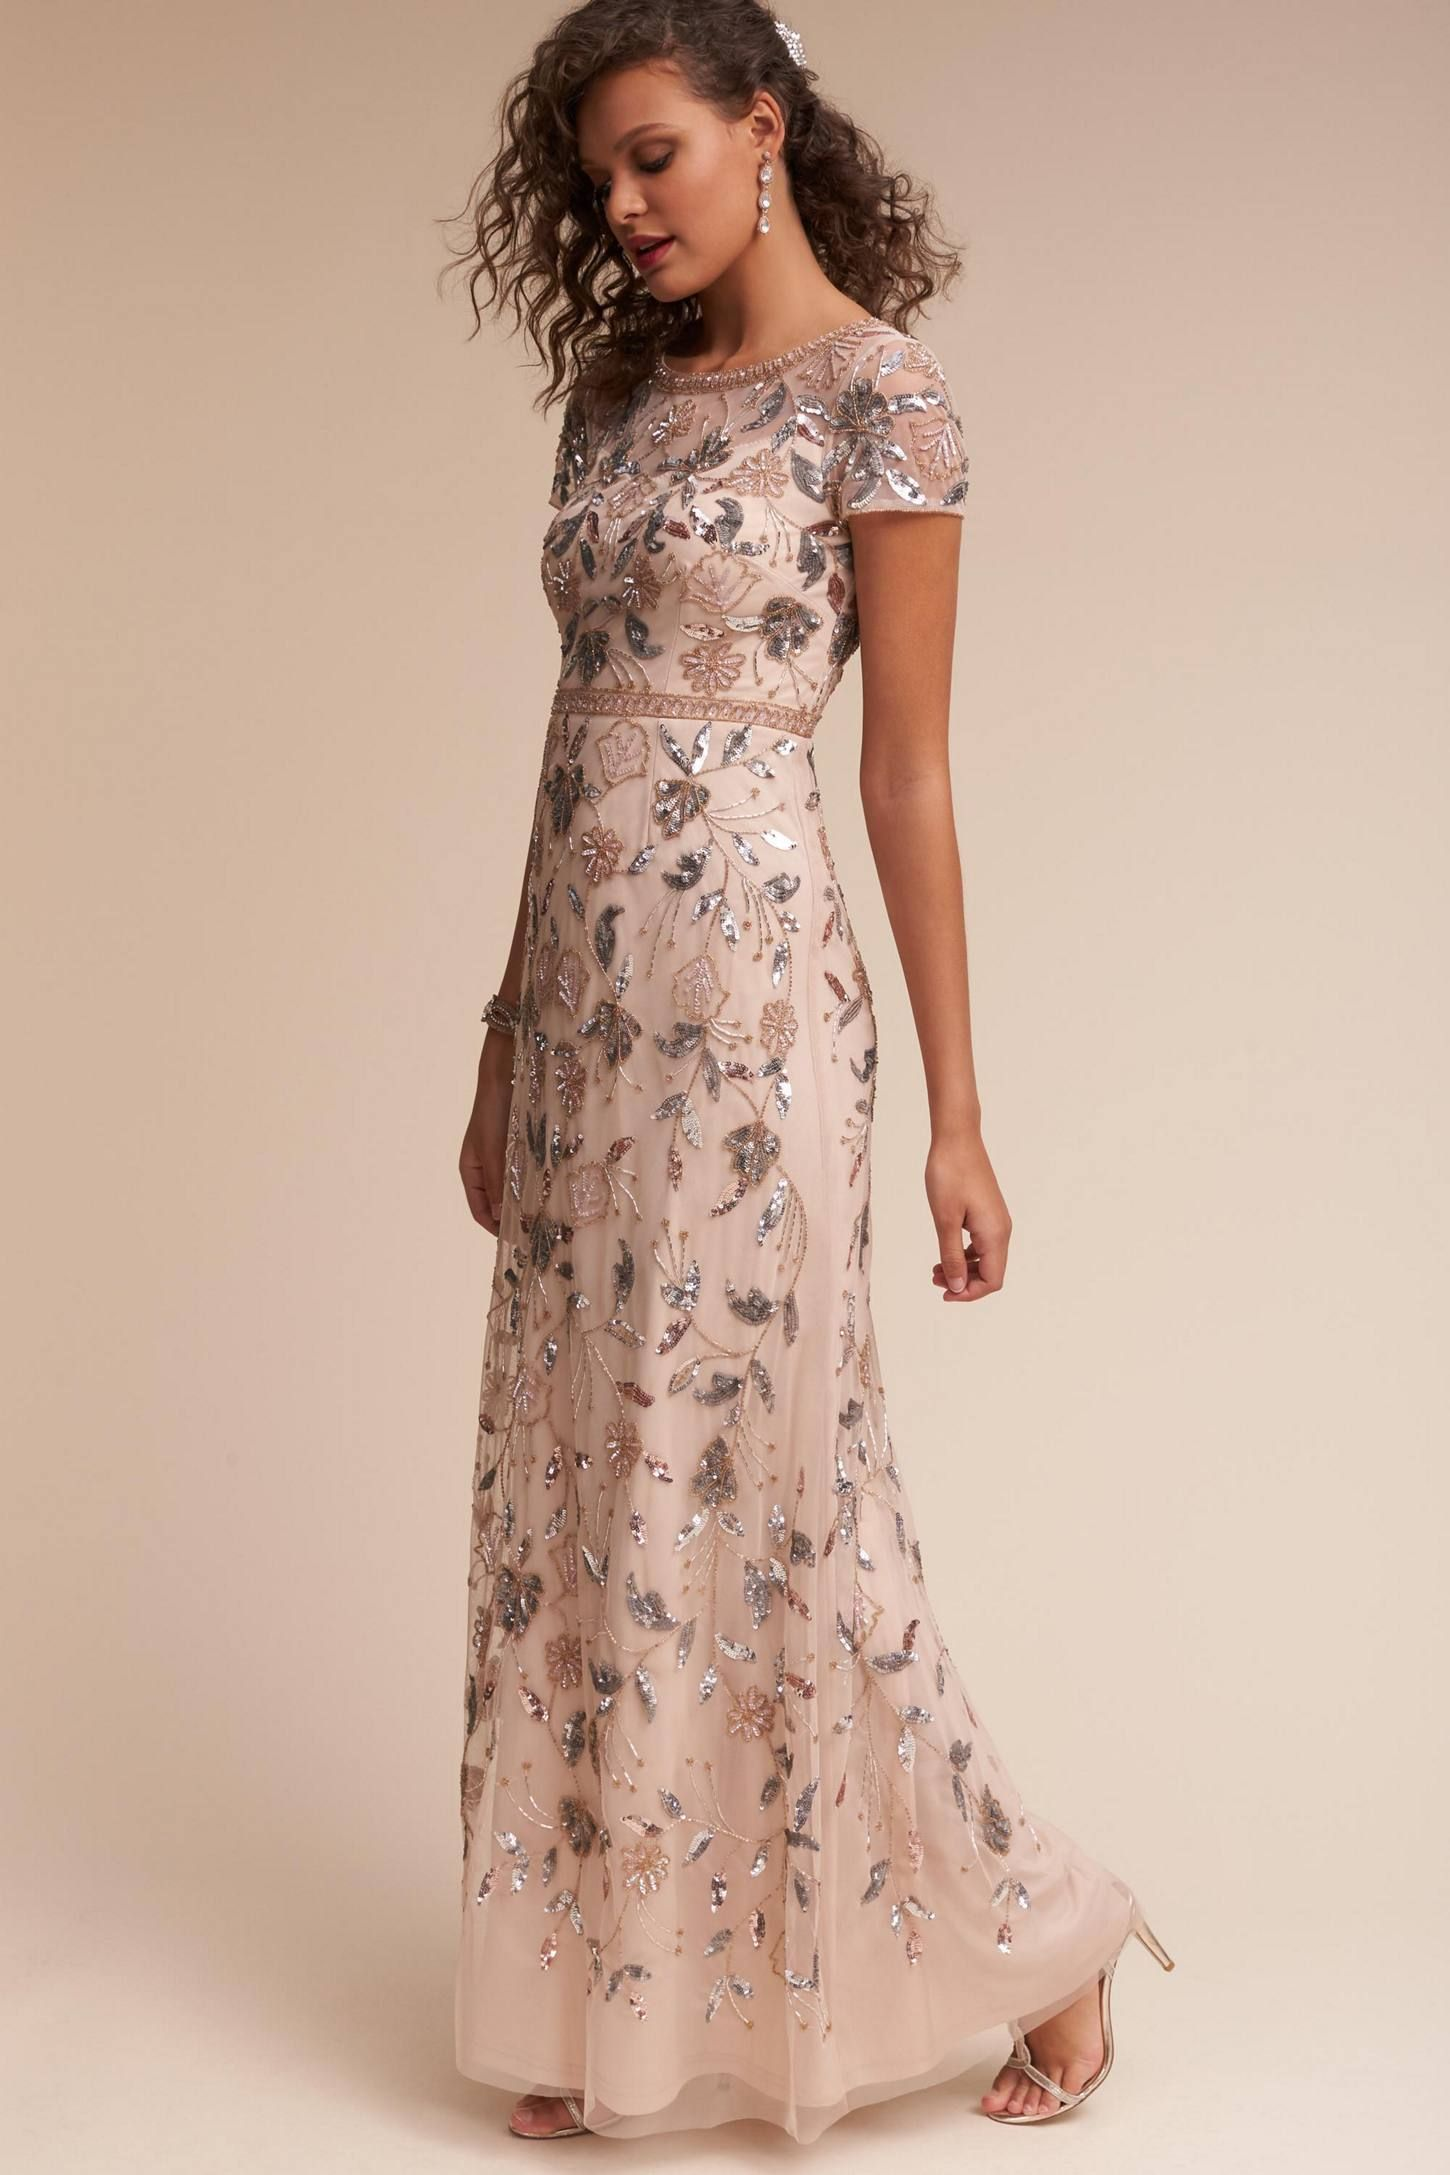 cfc0058cc9d Shop the Cecelia Dress and more Anthropologie at Anthropologie today. Read  customer reviews